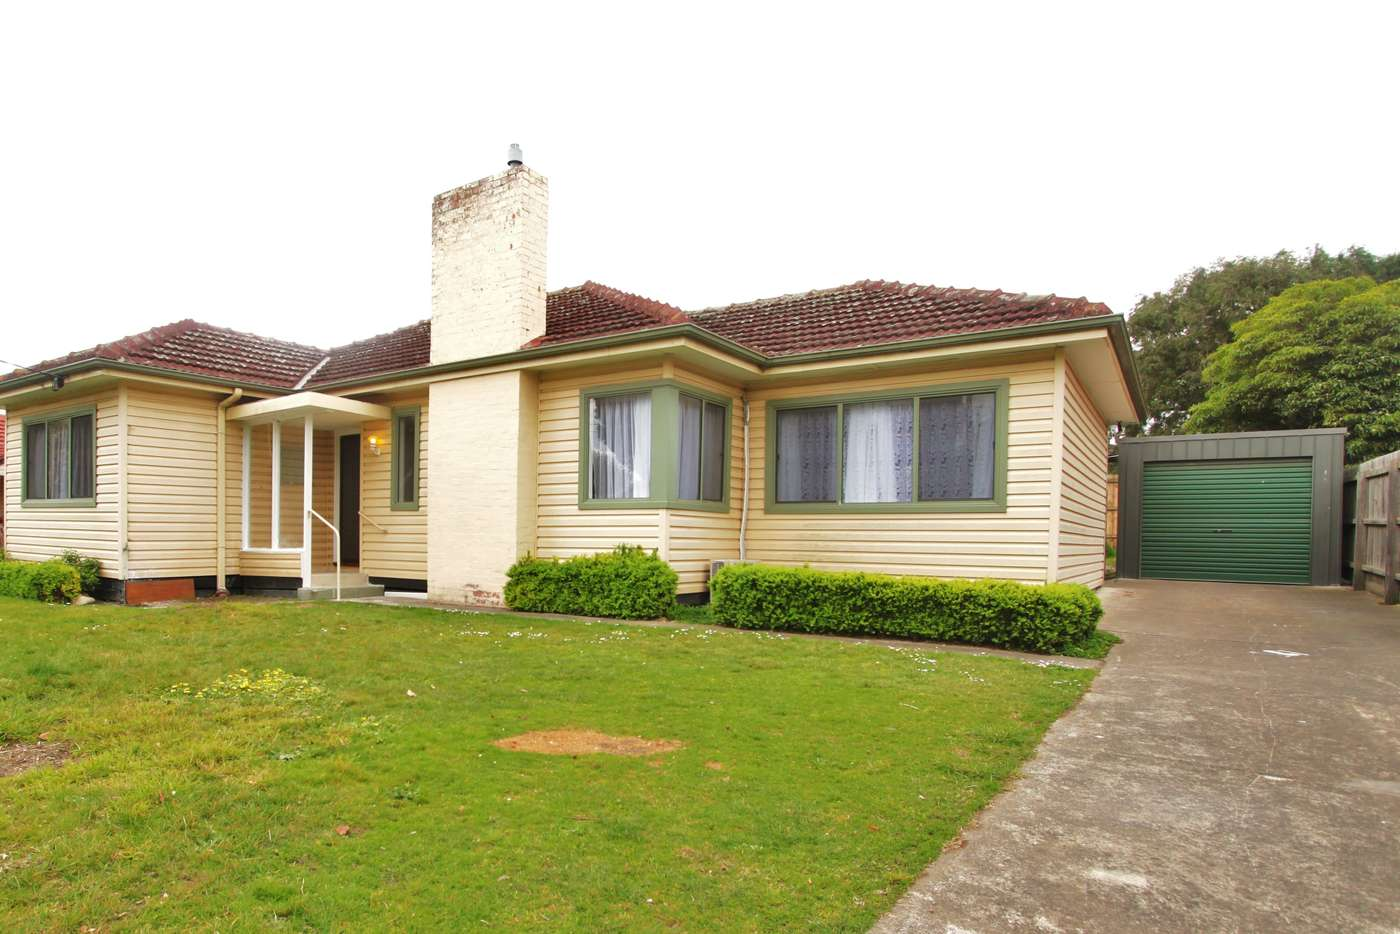 Main view of Homely house listing, 31 Beauford Street, Huntingdale VIC 3166